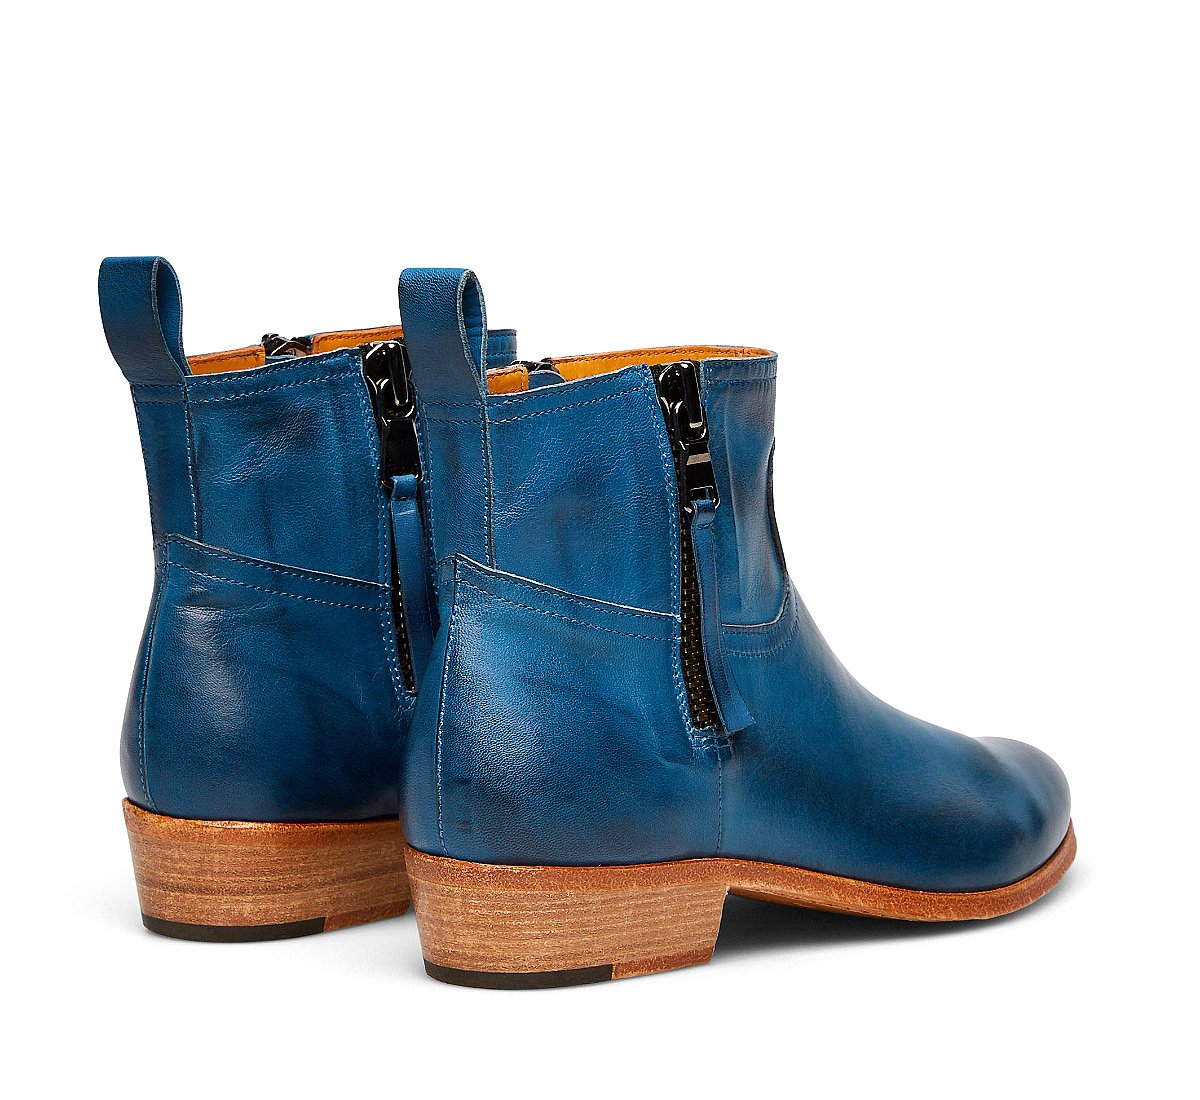 Barracuda cowboy boots in vegetable nappa